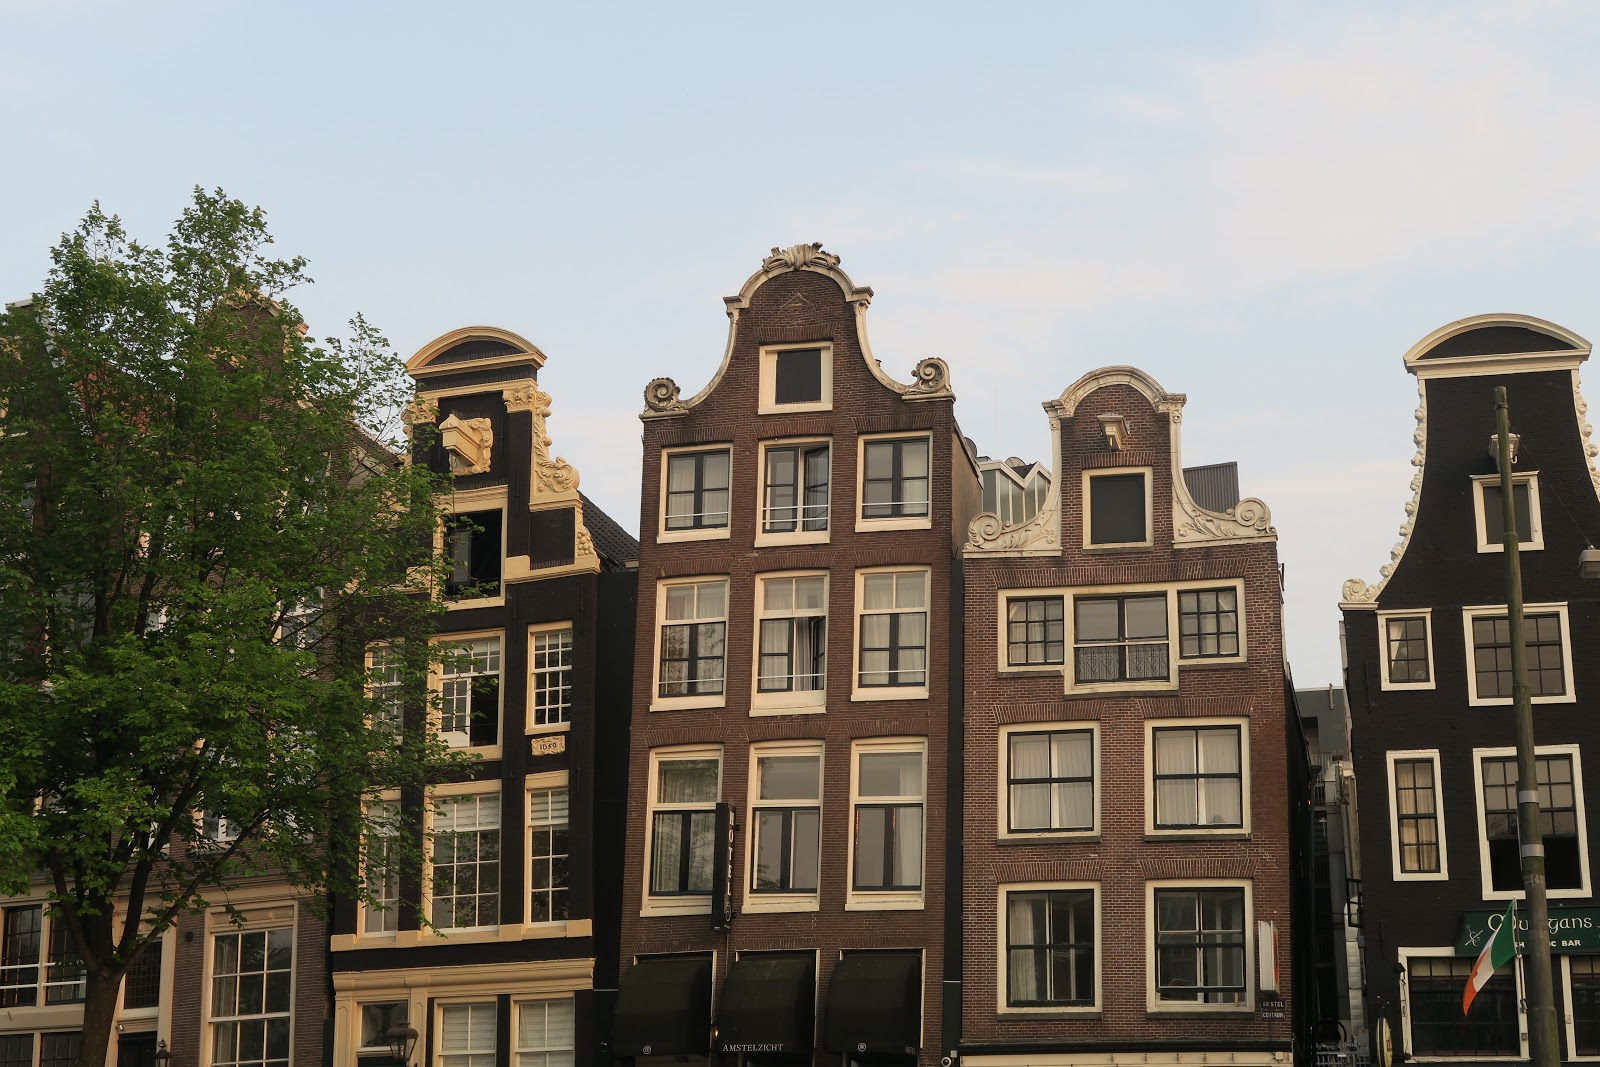 The Dancing Houses in Amsterdam